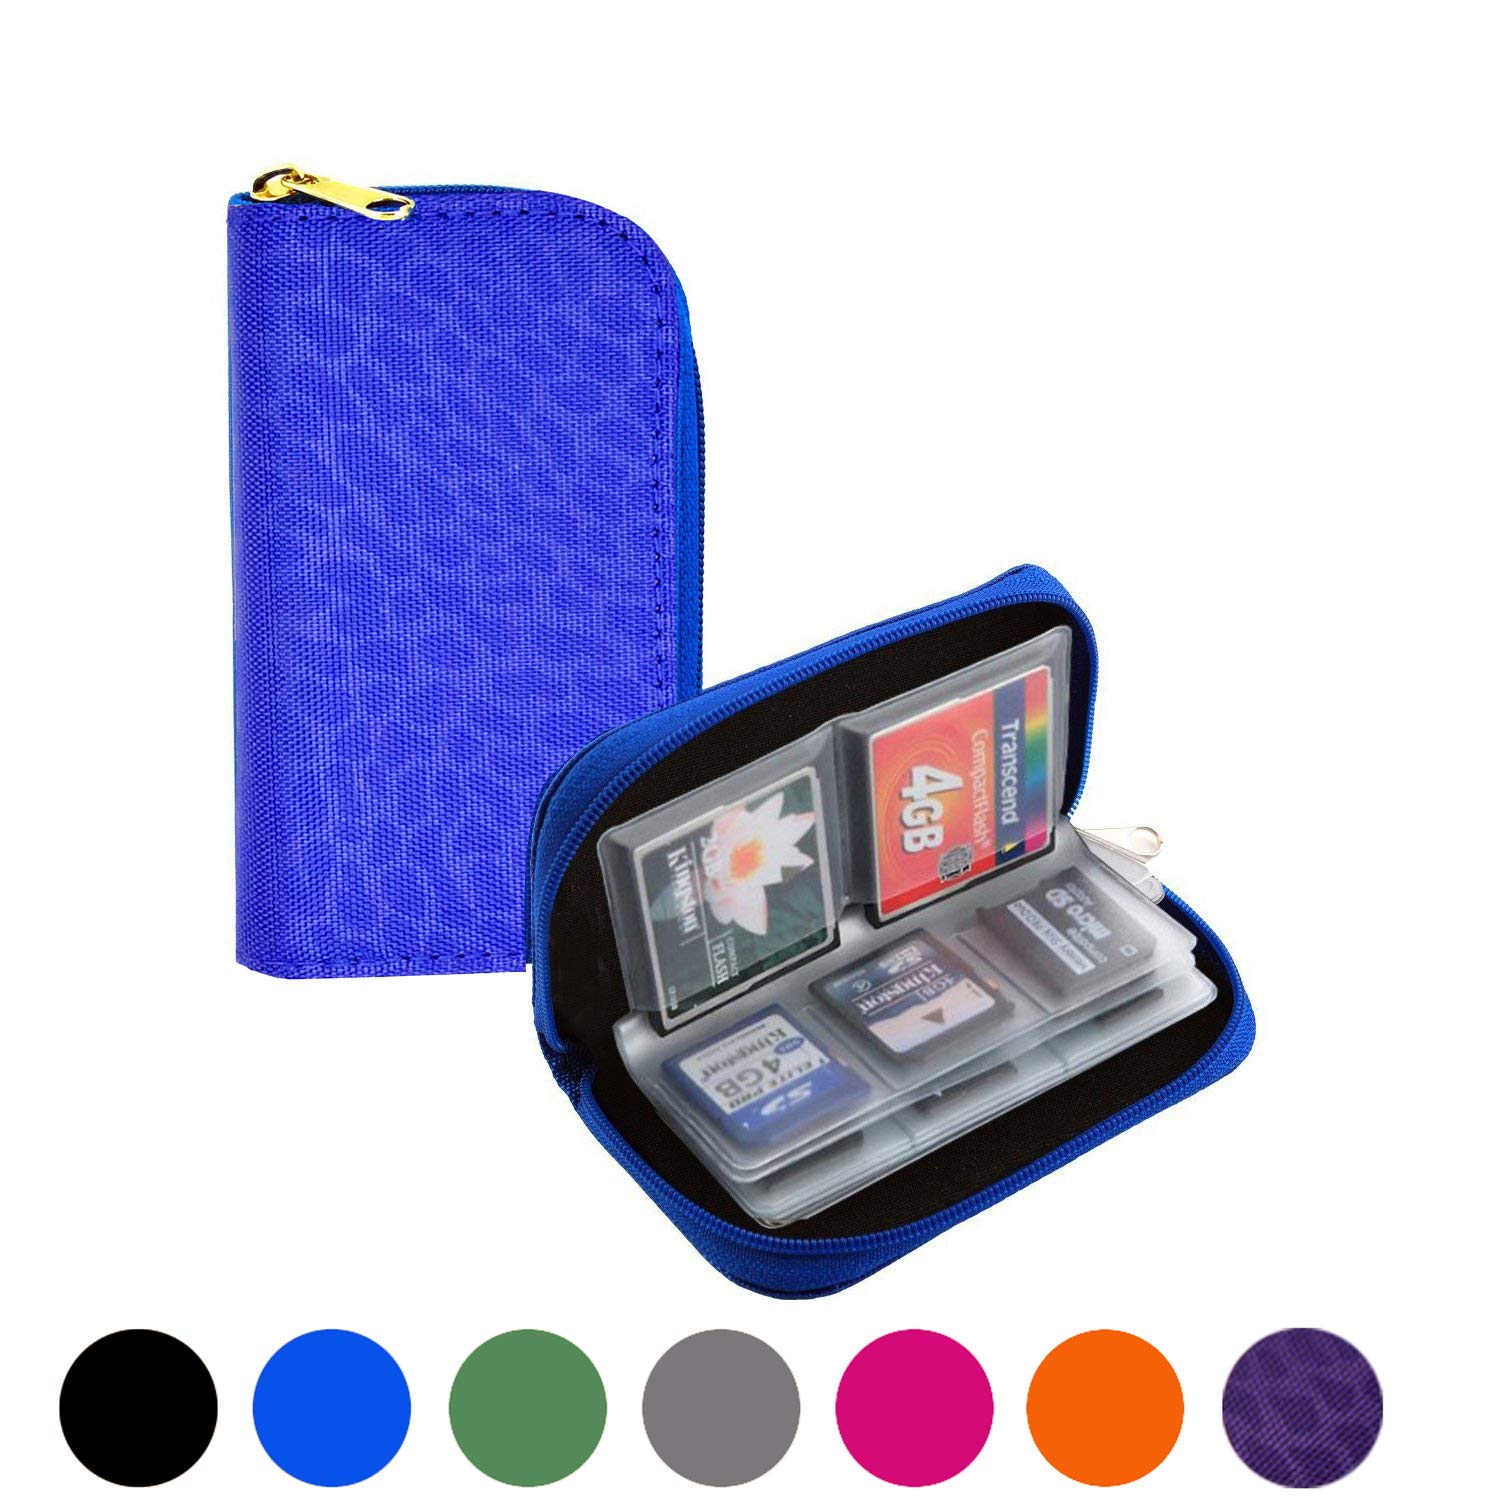 Mixtecc Memory Card Carrying Case - Suitable for SDHC and SD Cards, 8 Pages and 22 Slots Memory Card Holder Bag Wallet Bag for Media Storage Organization (Purple Leopard)